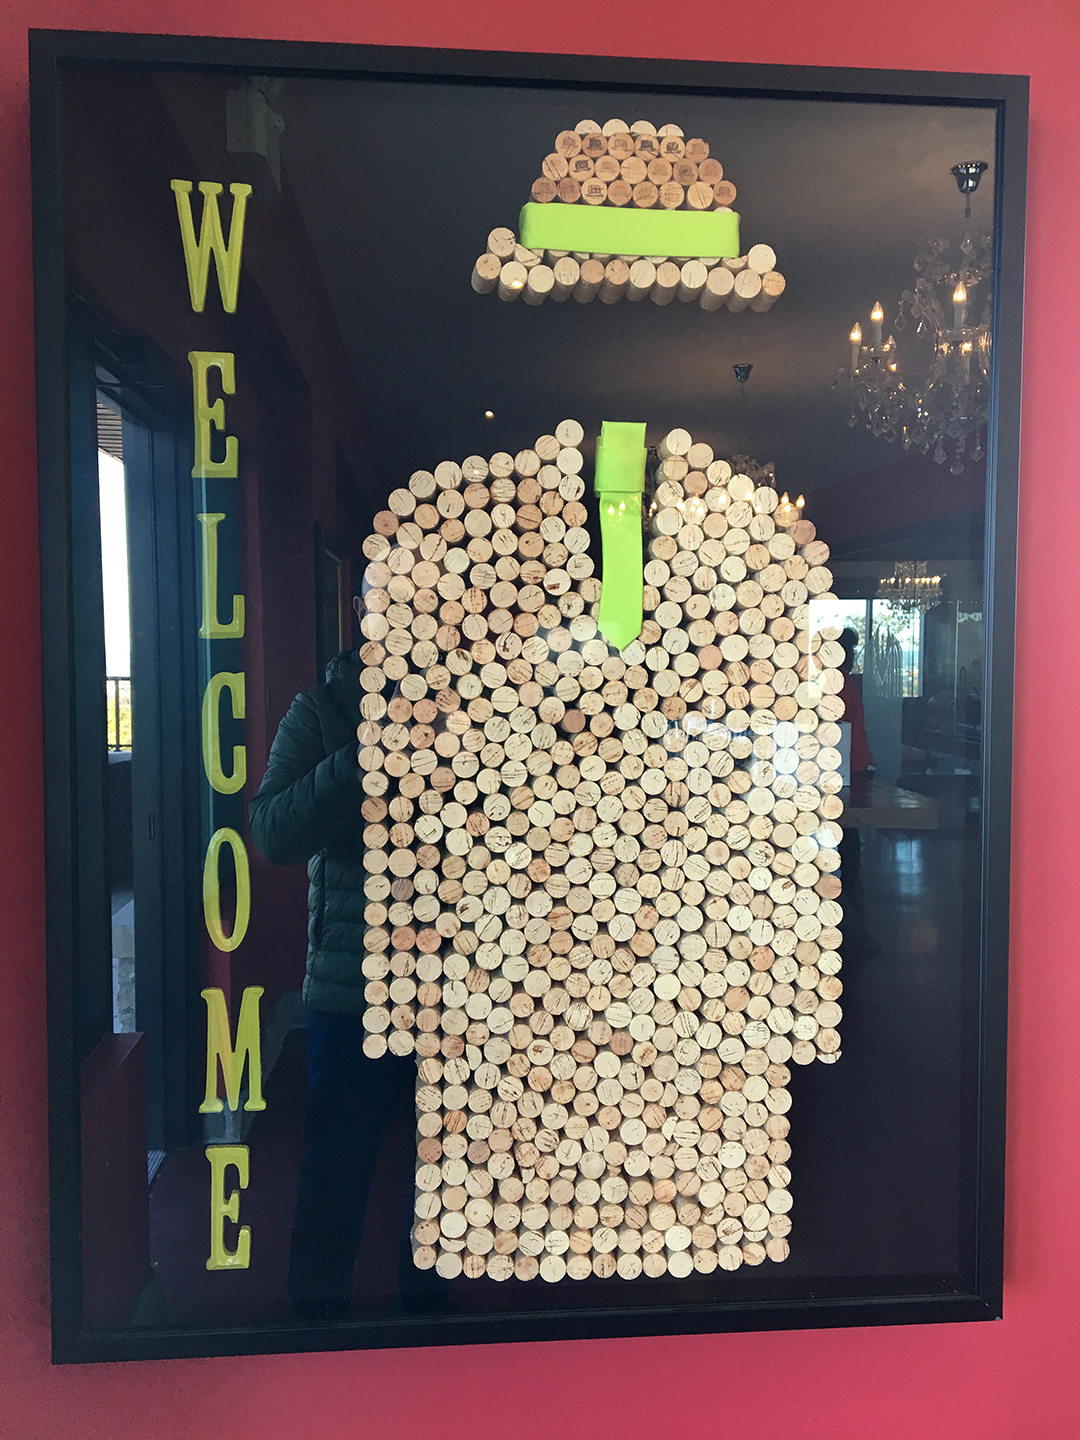 A WELCOME sign with the shape of a jacket and hat made of corks and a bit of green ribbon